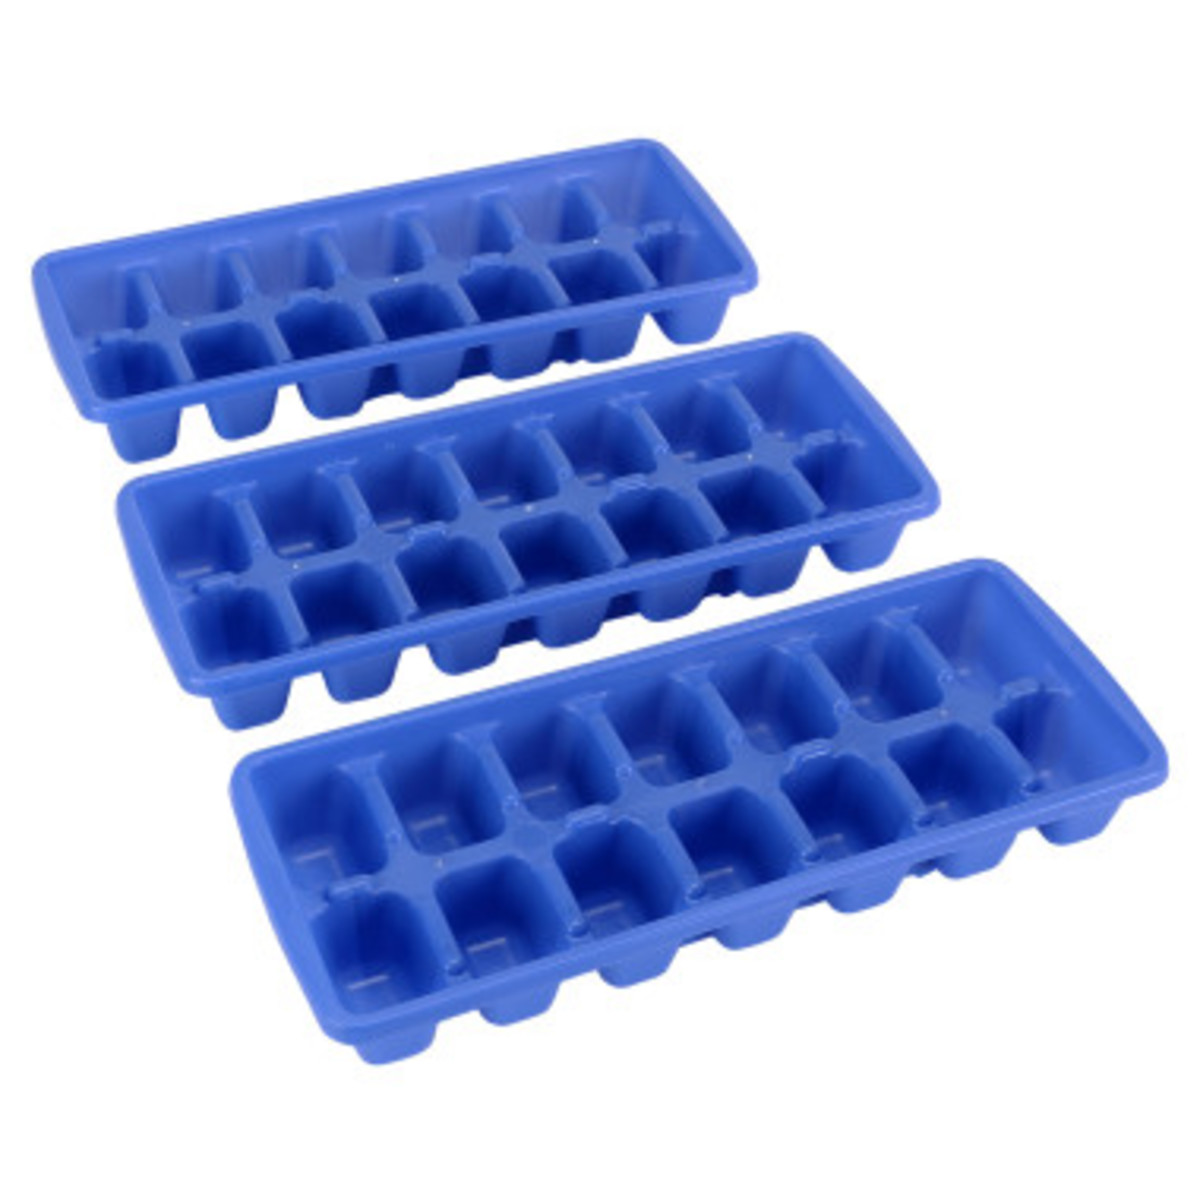 Ice cube trays-versatile and crafty uses!